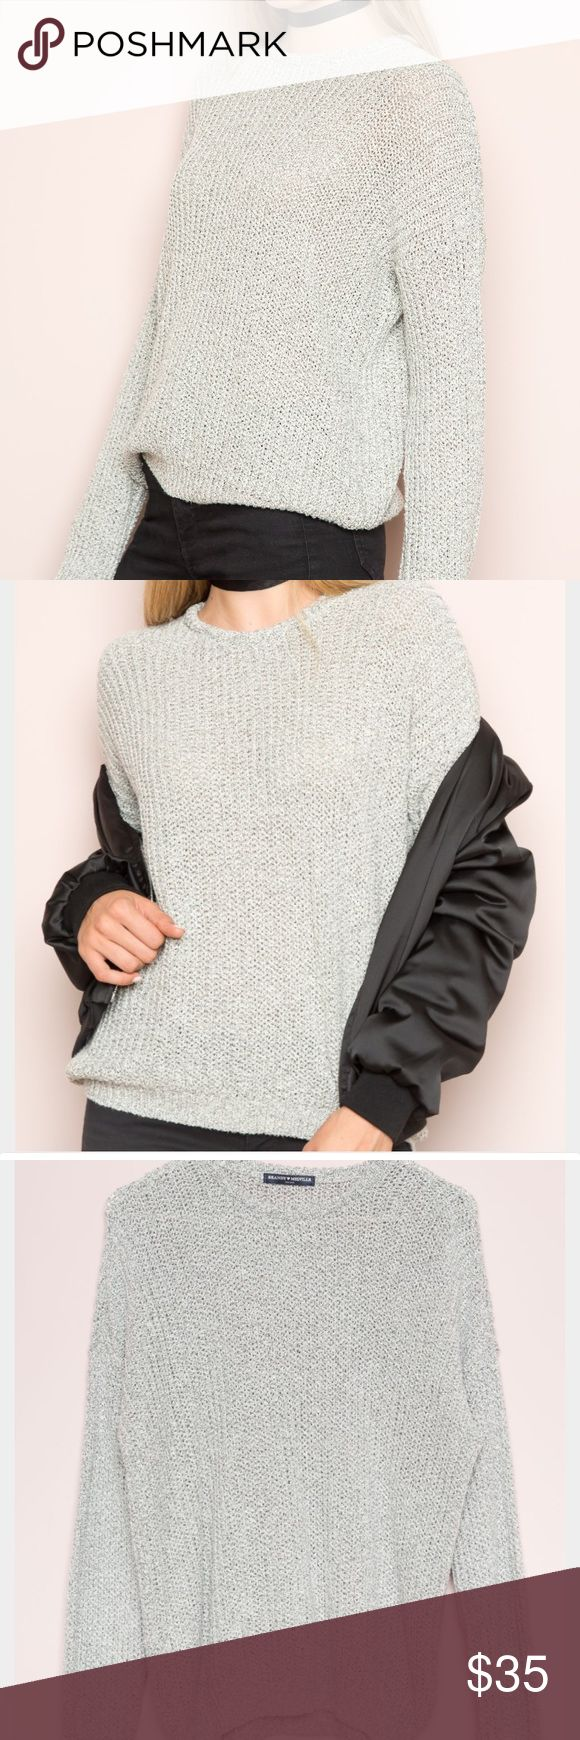 Bronx Brandy Melville Sweater Super cute grey knit sweater, great quality and perfect for this season Brandy Melville Sweaters